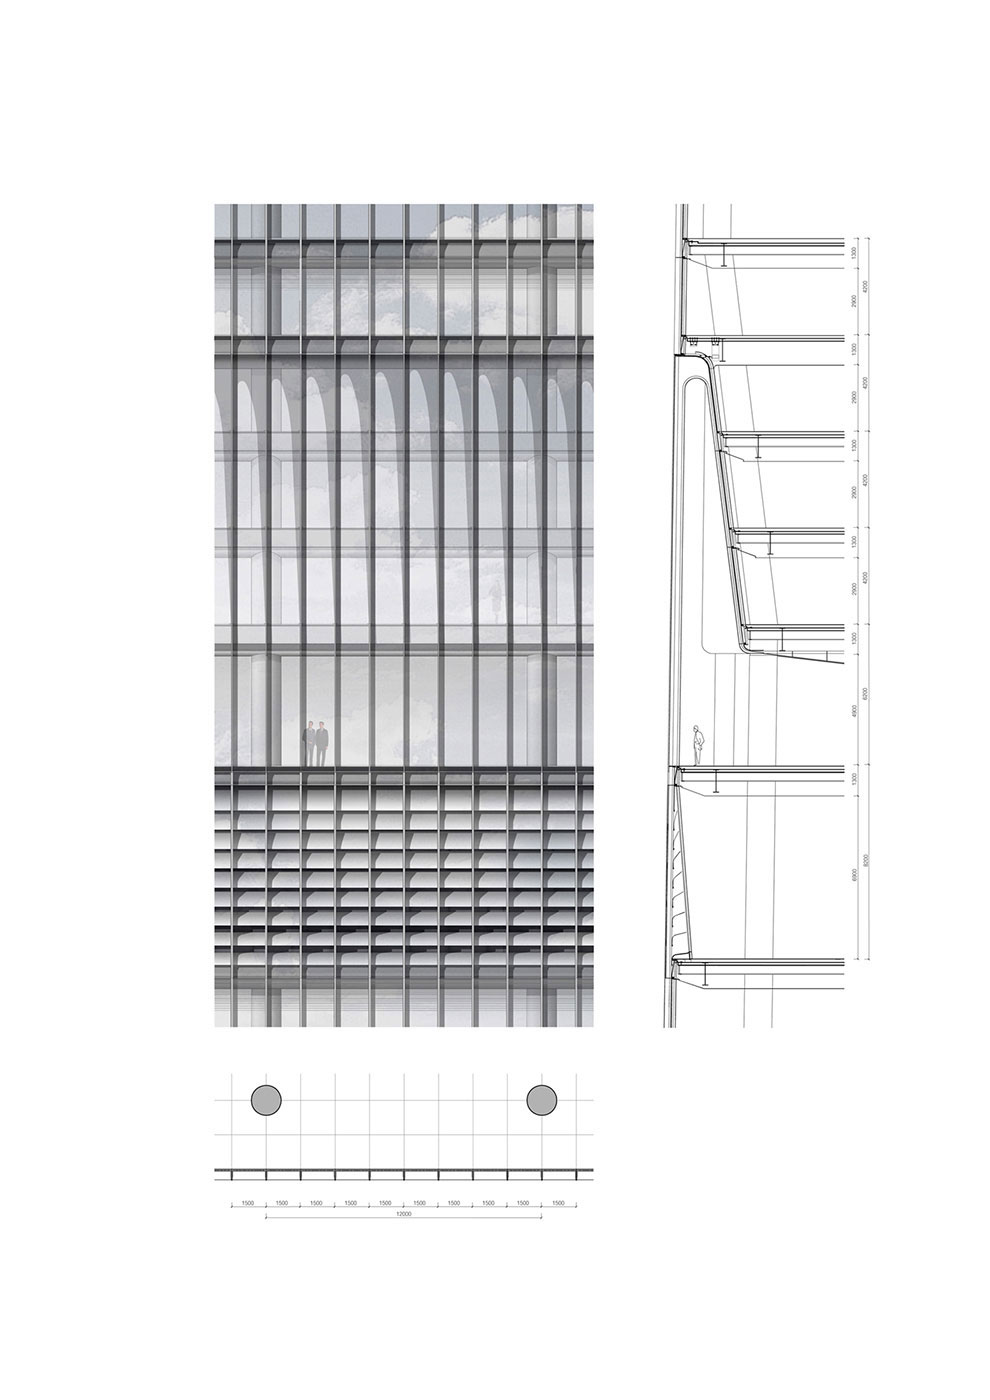 tower mid zone facade detail Jaeger Kahlen Partners Architects Ltd.}